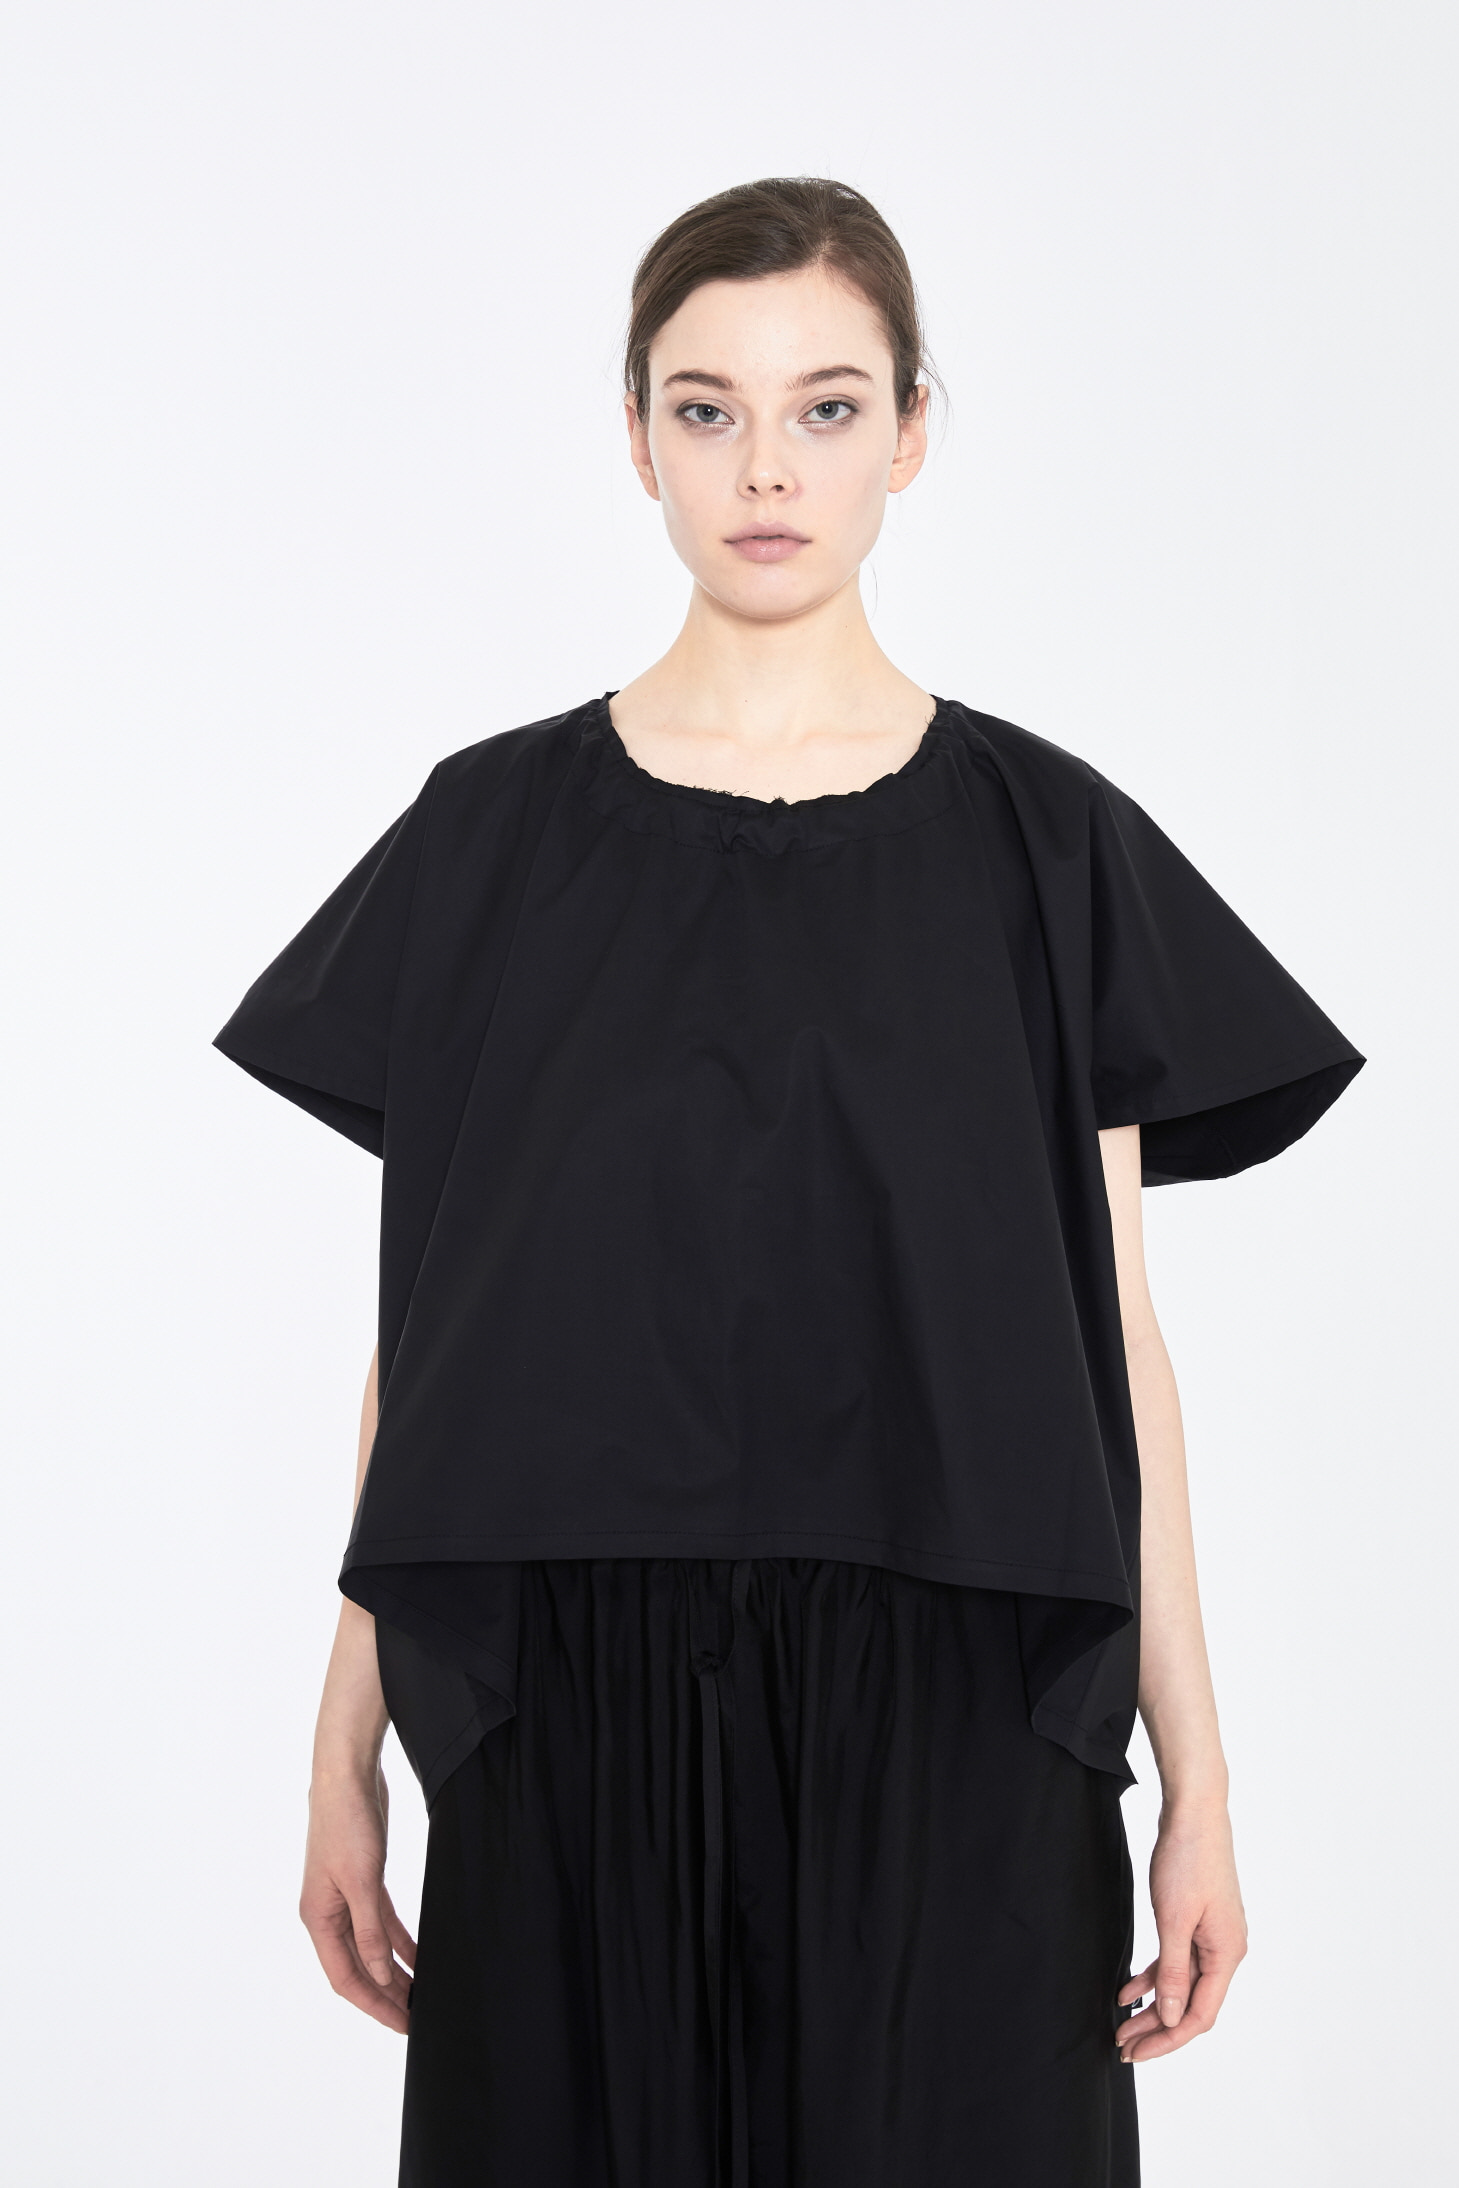 DAA ROUND SQUARE SHORT TOP